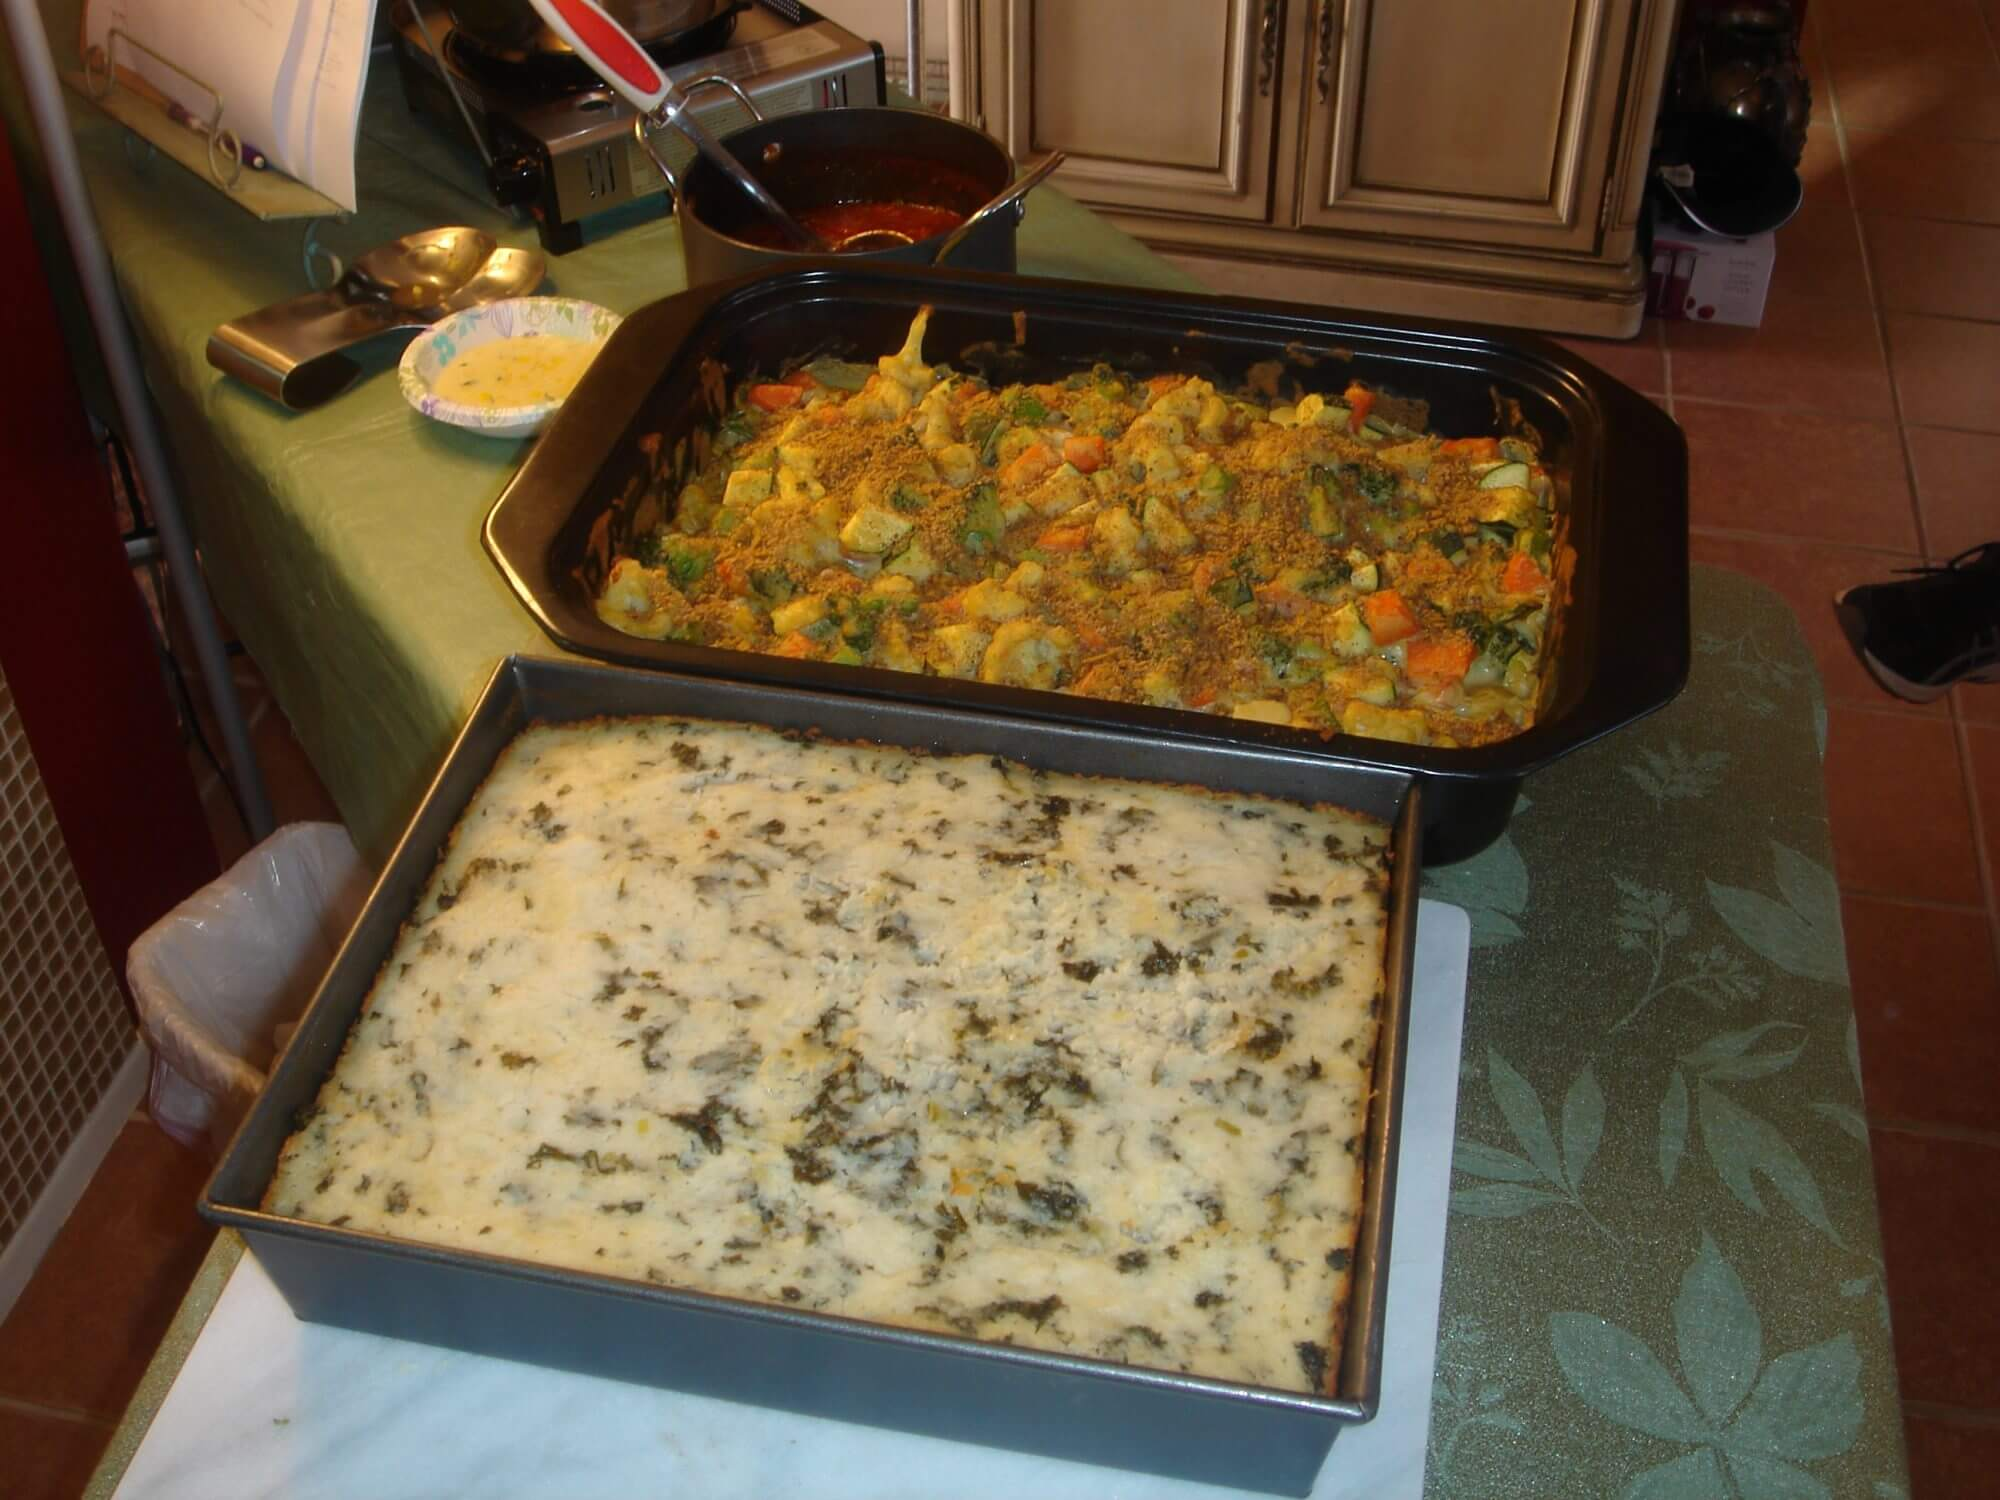 Cheesey Vegetable Casserole and Smokey Kale-Potatoes